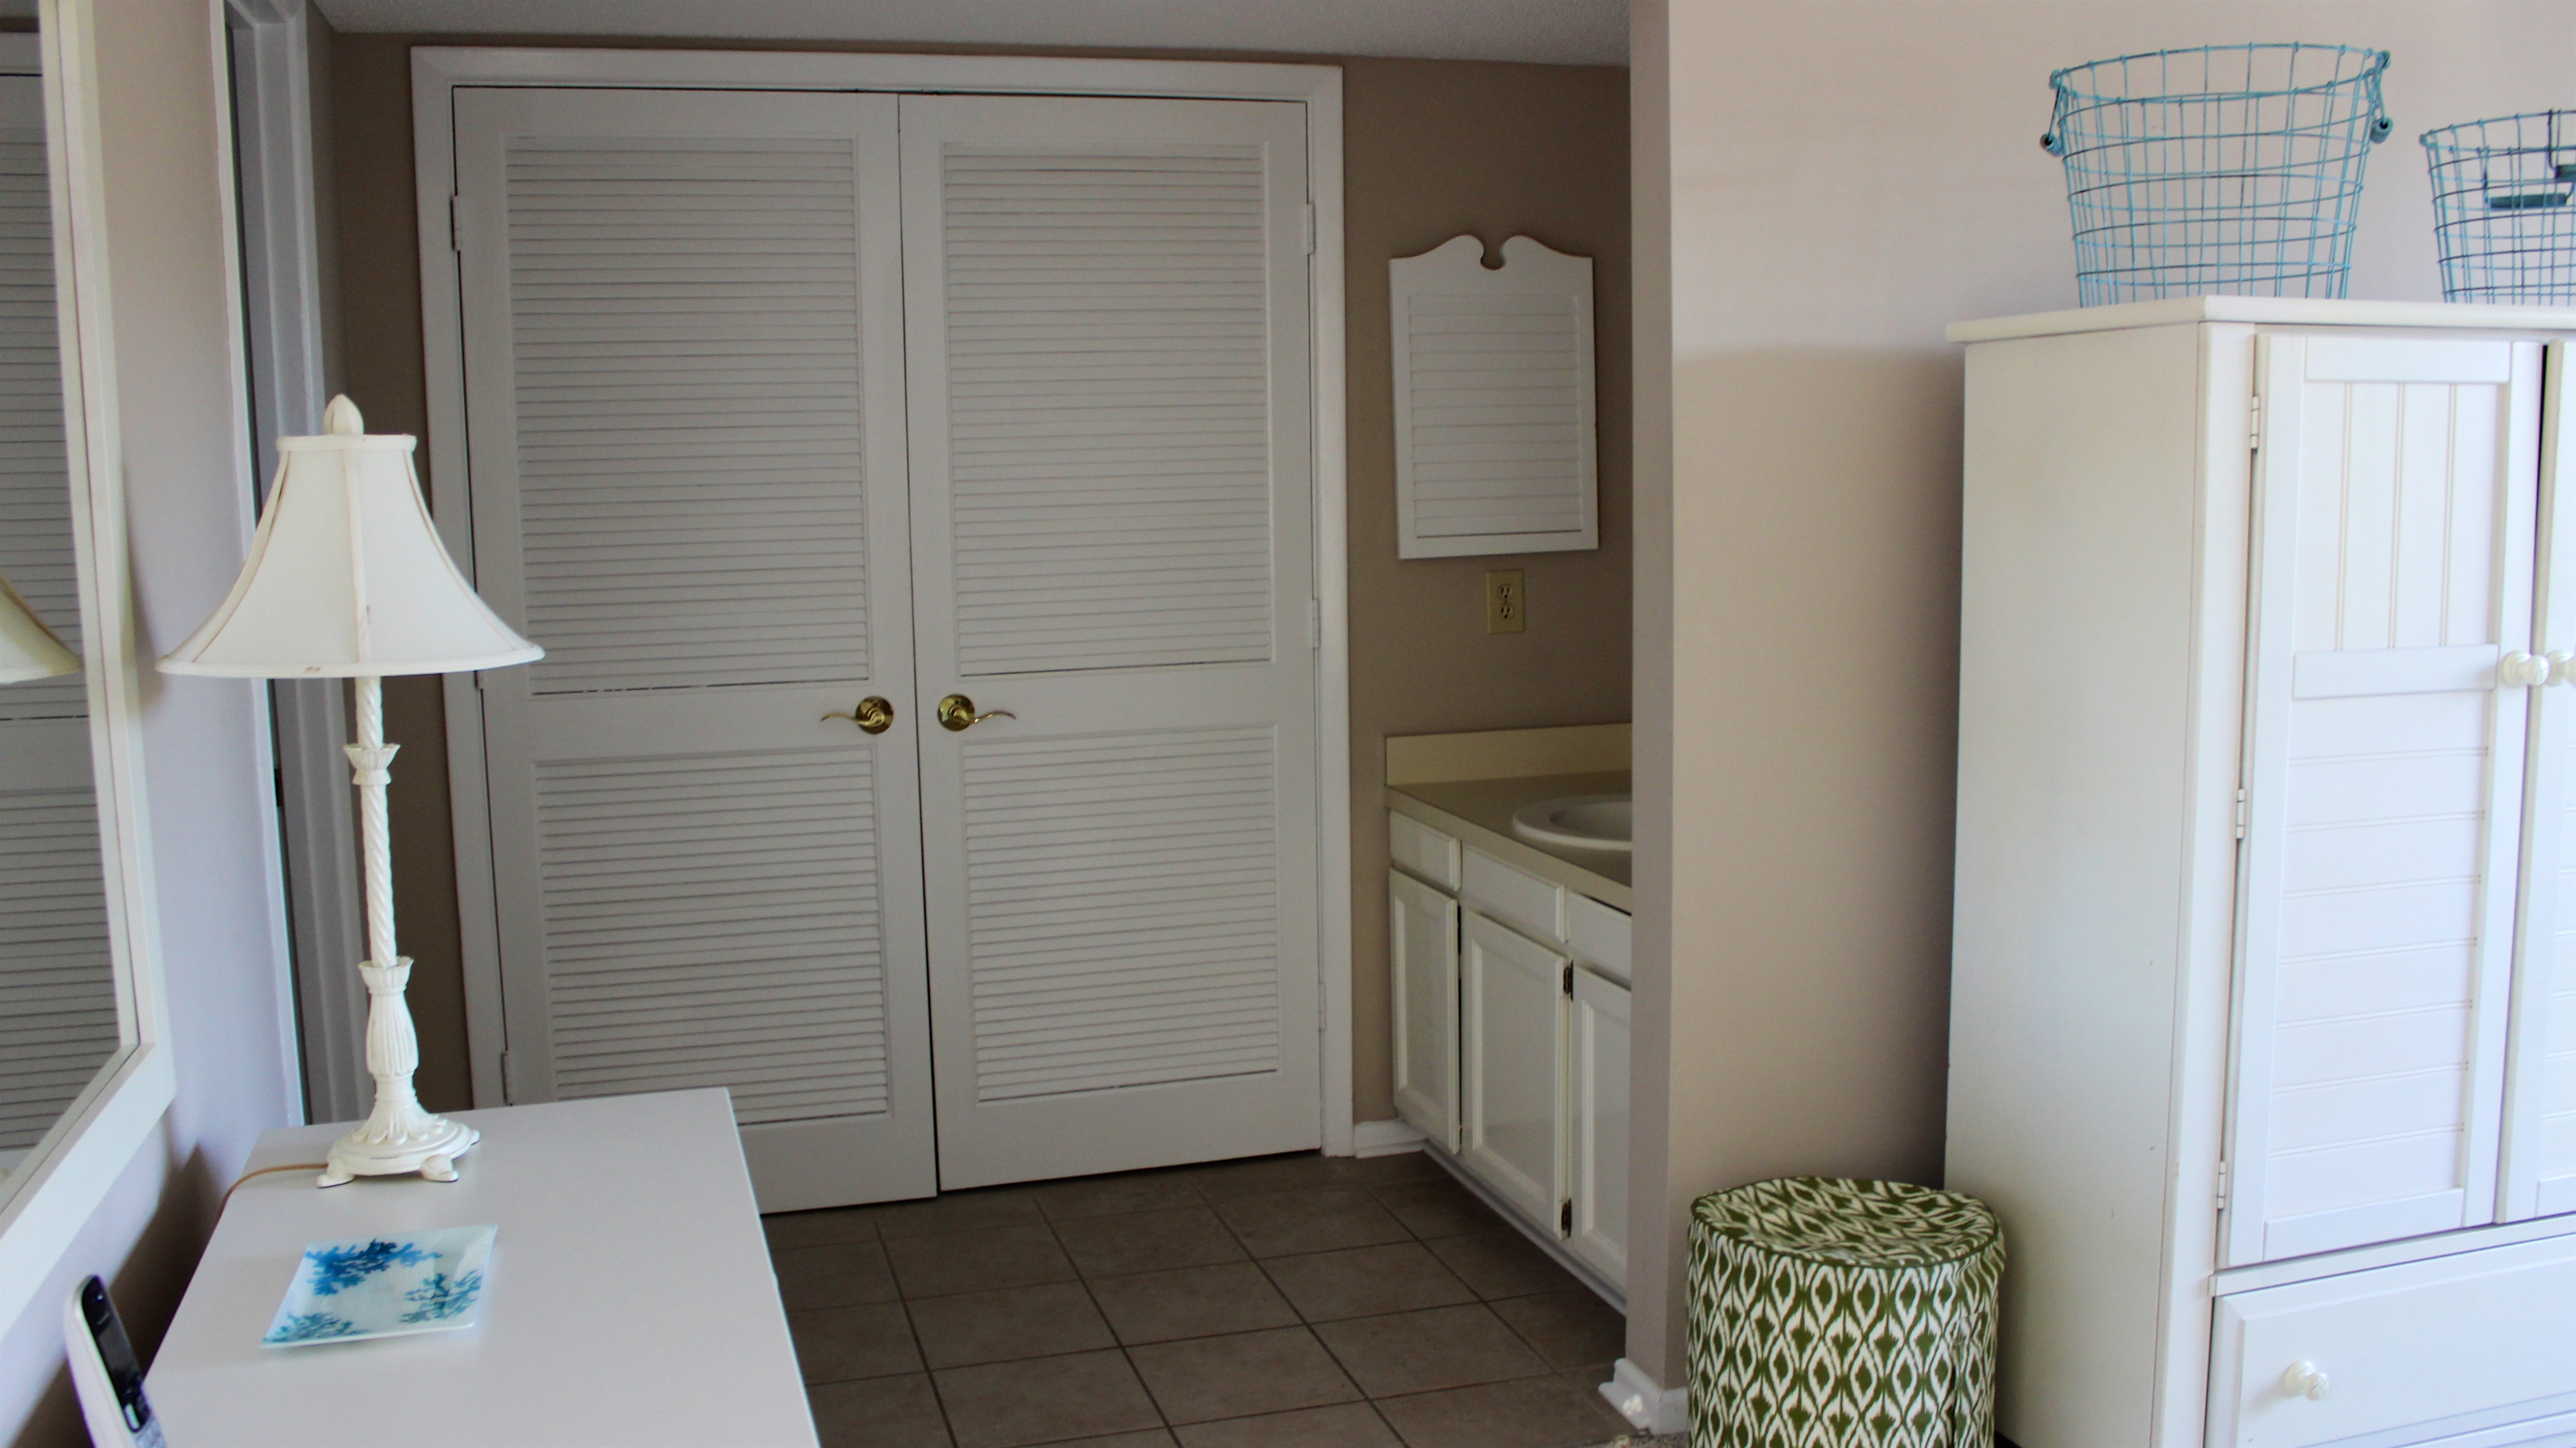 The master bath has a separate sink area and large closet.